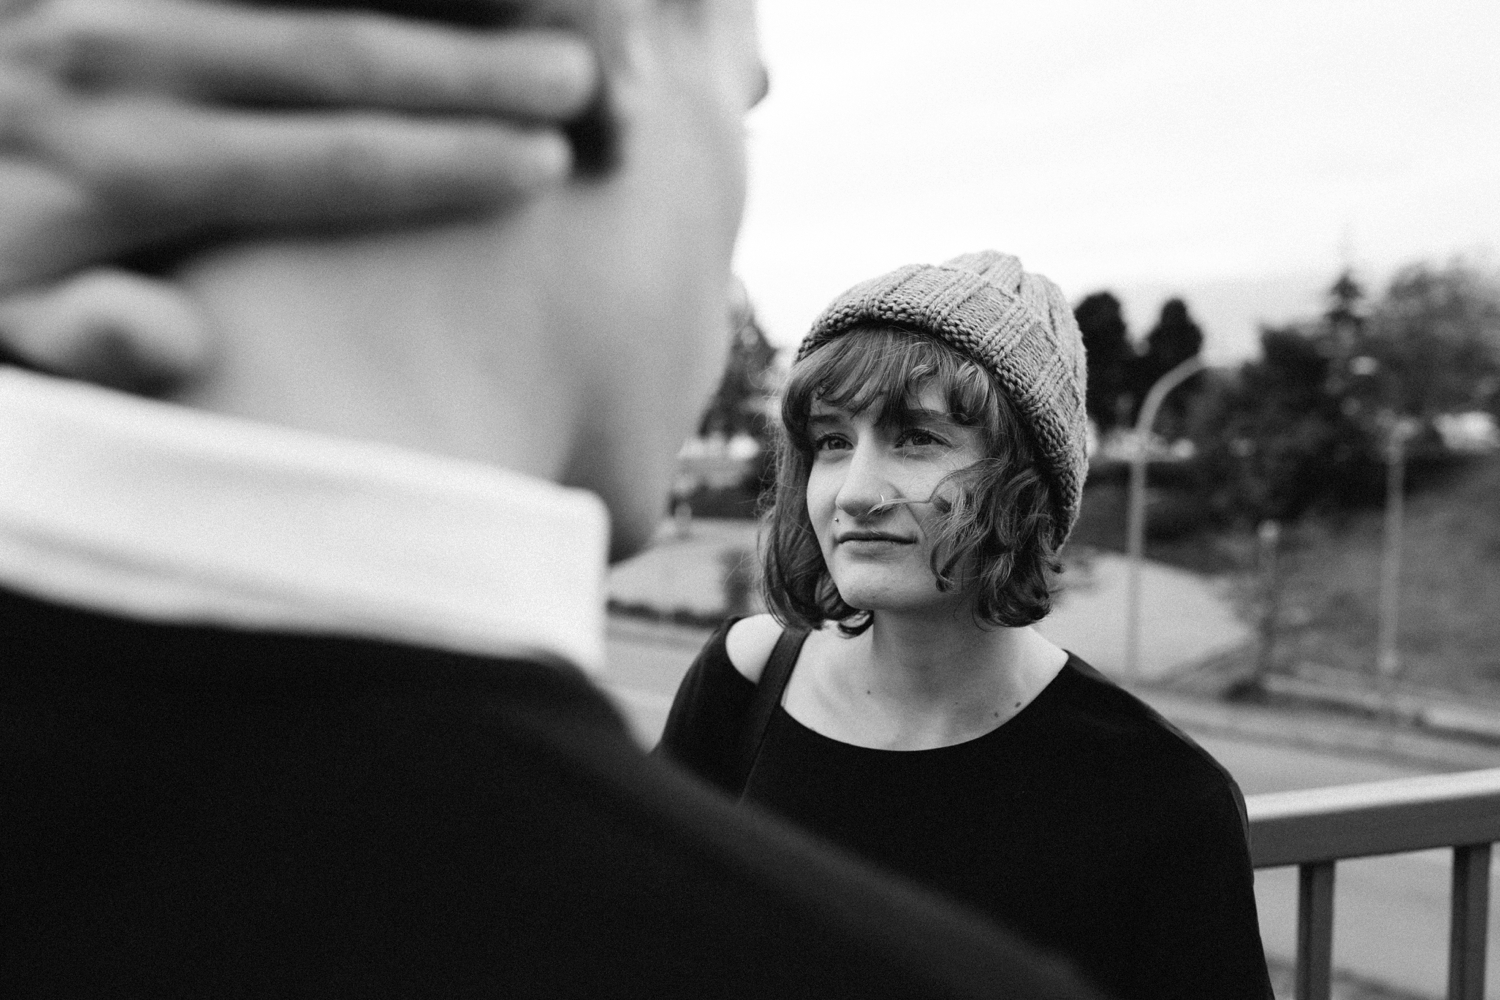 Hipster Girl Looks At Boy Wearing Toque